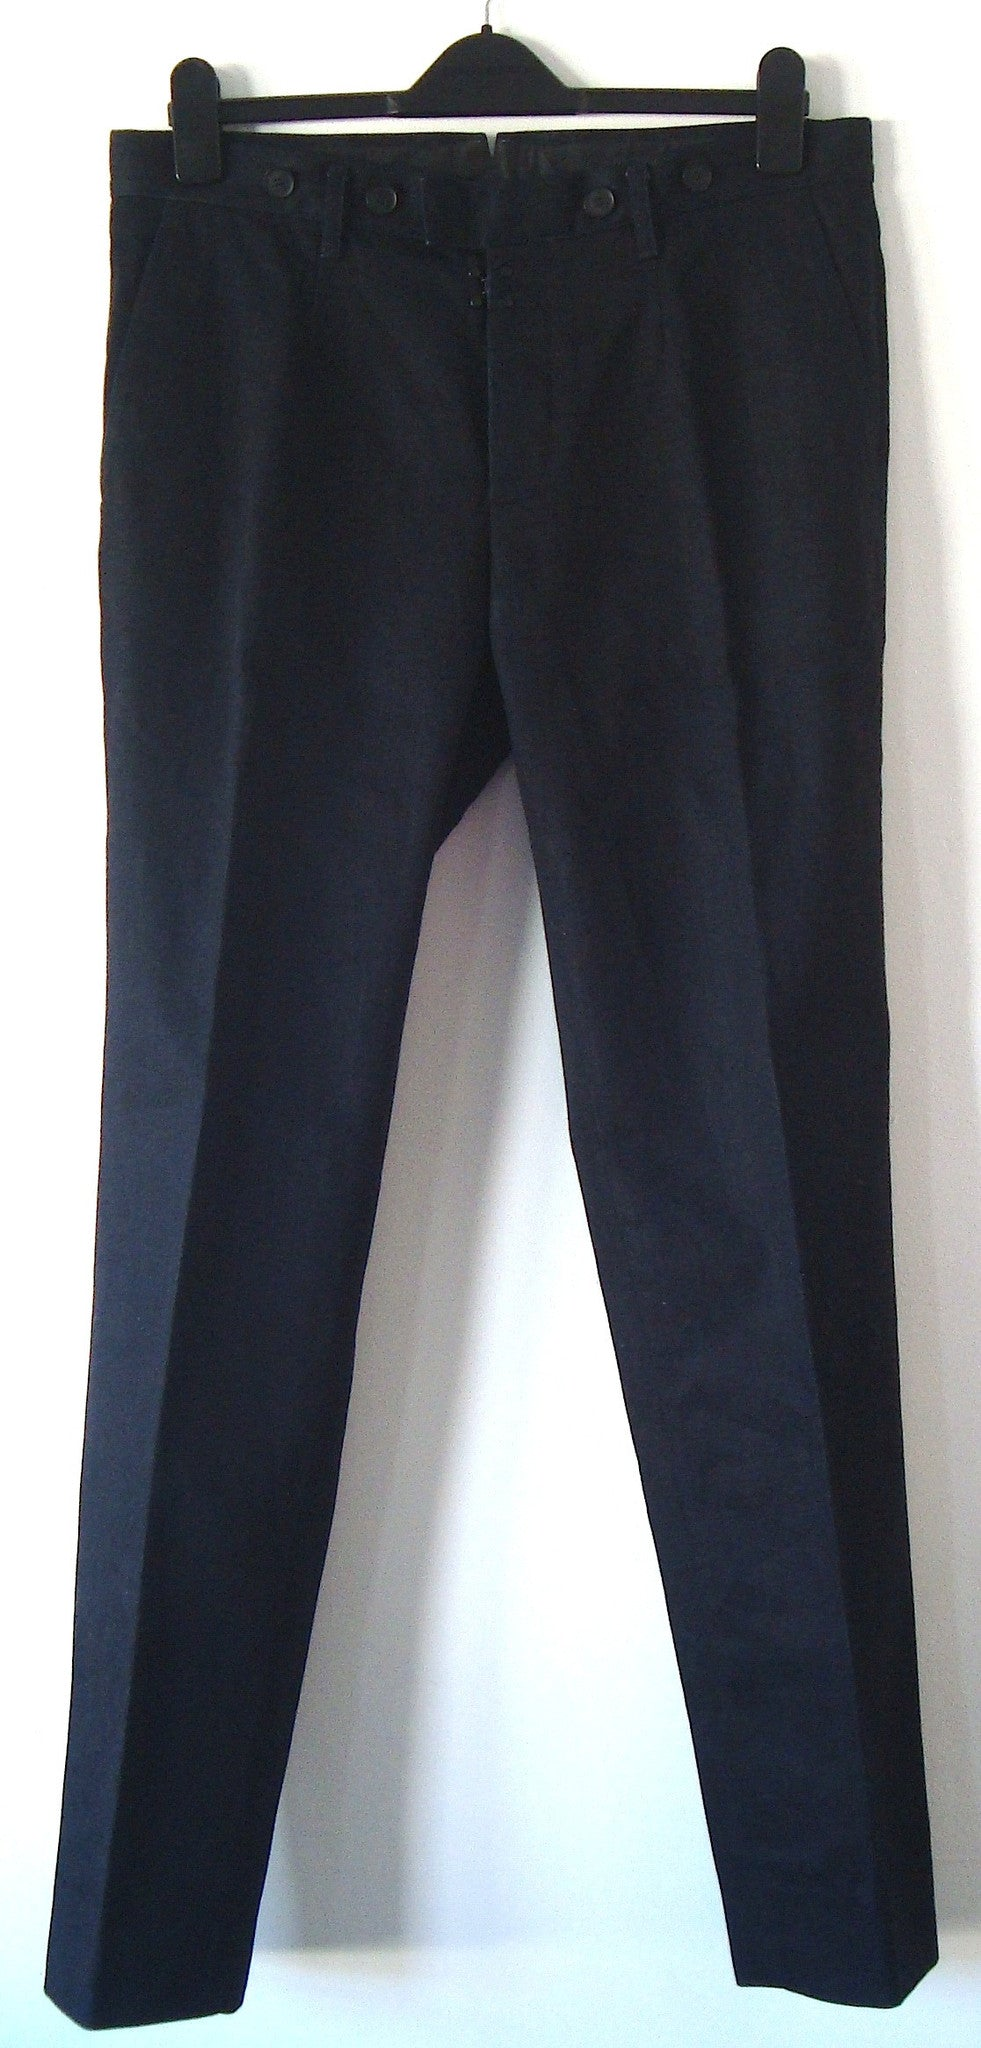 2012 Heavy Coated Denim Workwear Trousers with Metal Clasp